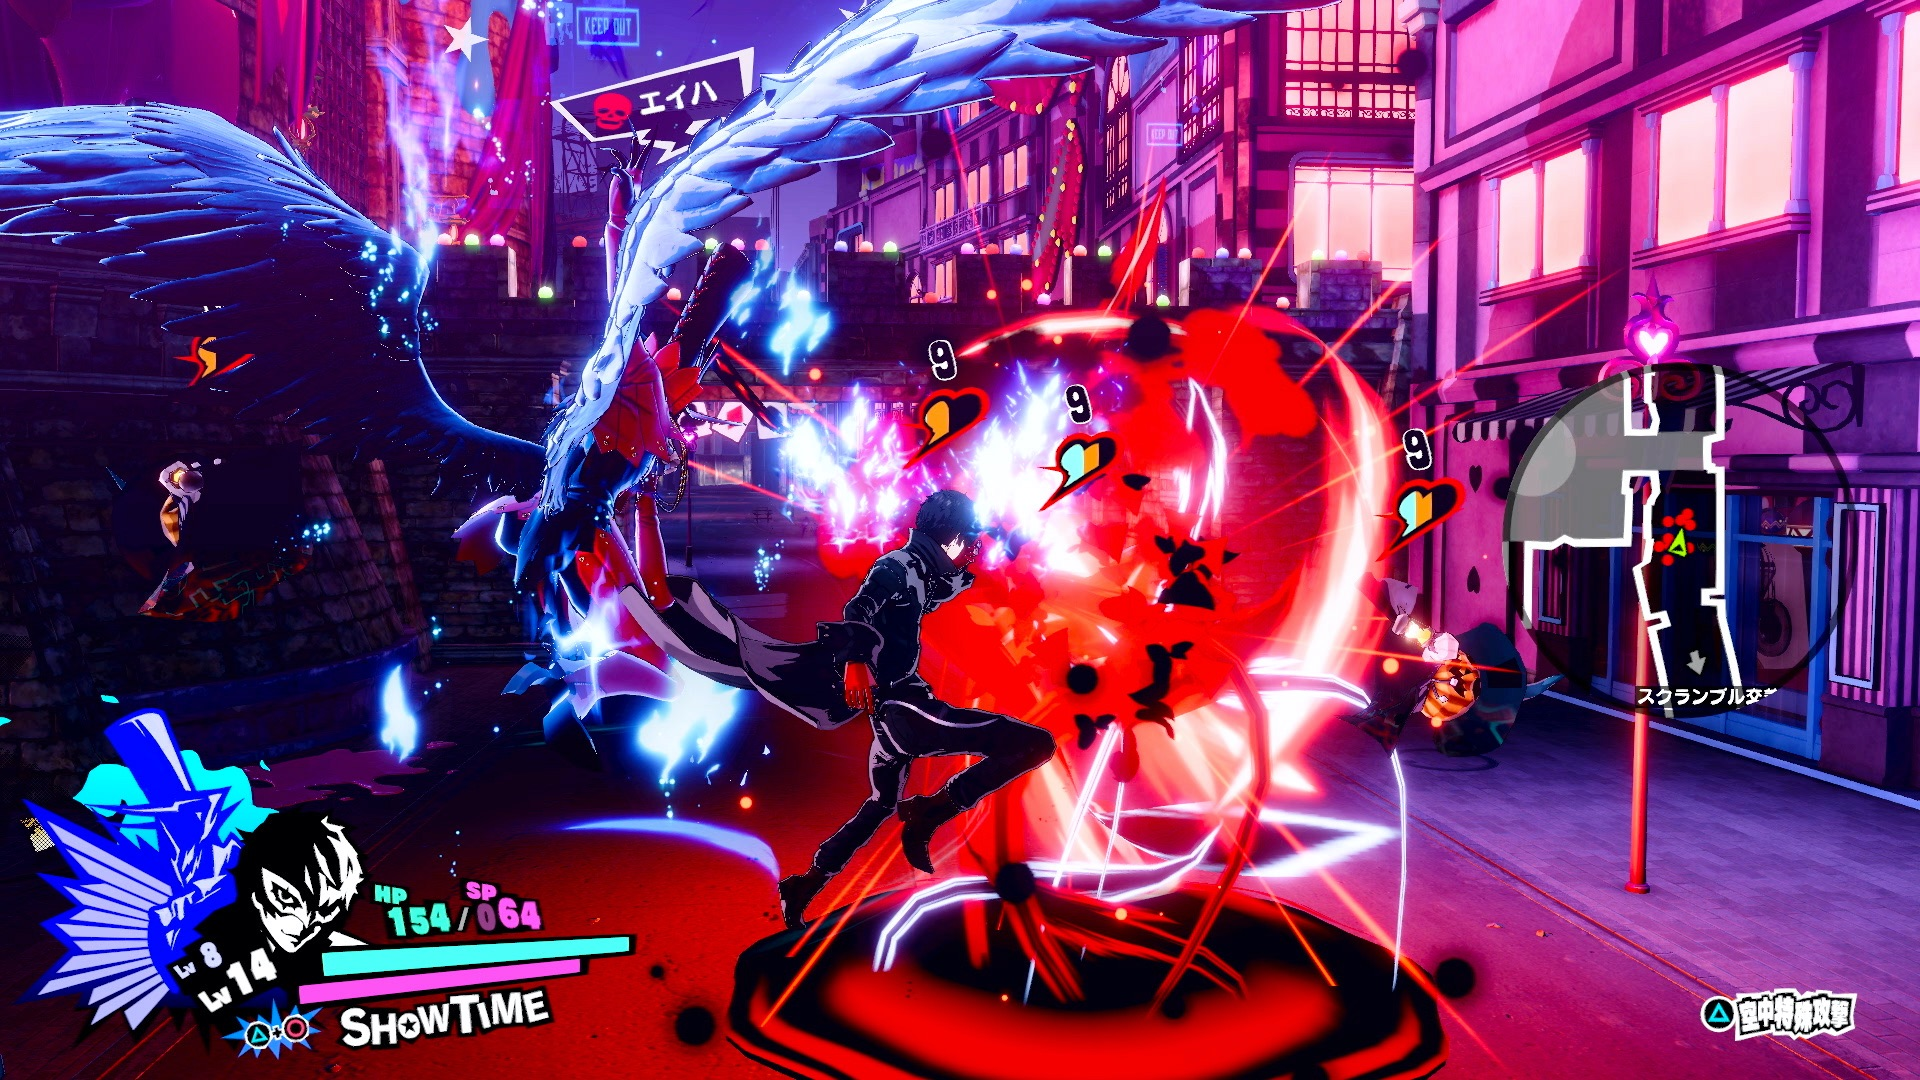 Persona 5 Scramble The Phantom Strikers Screenshot displaying some battle skills.